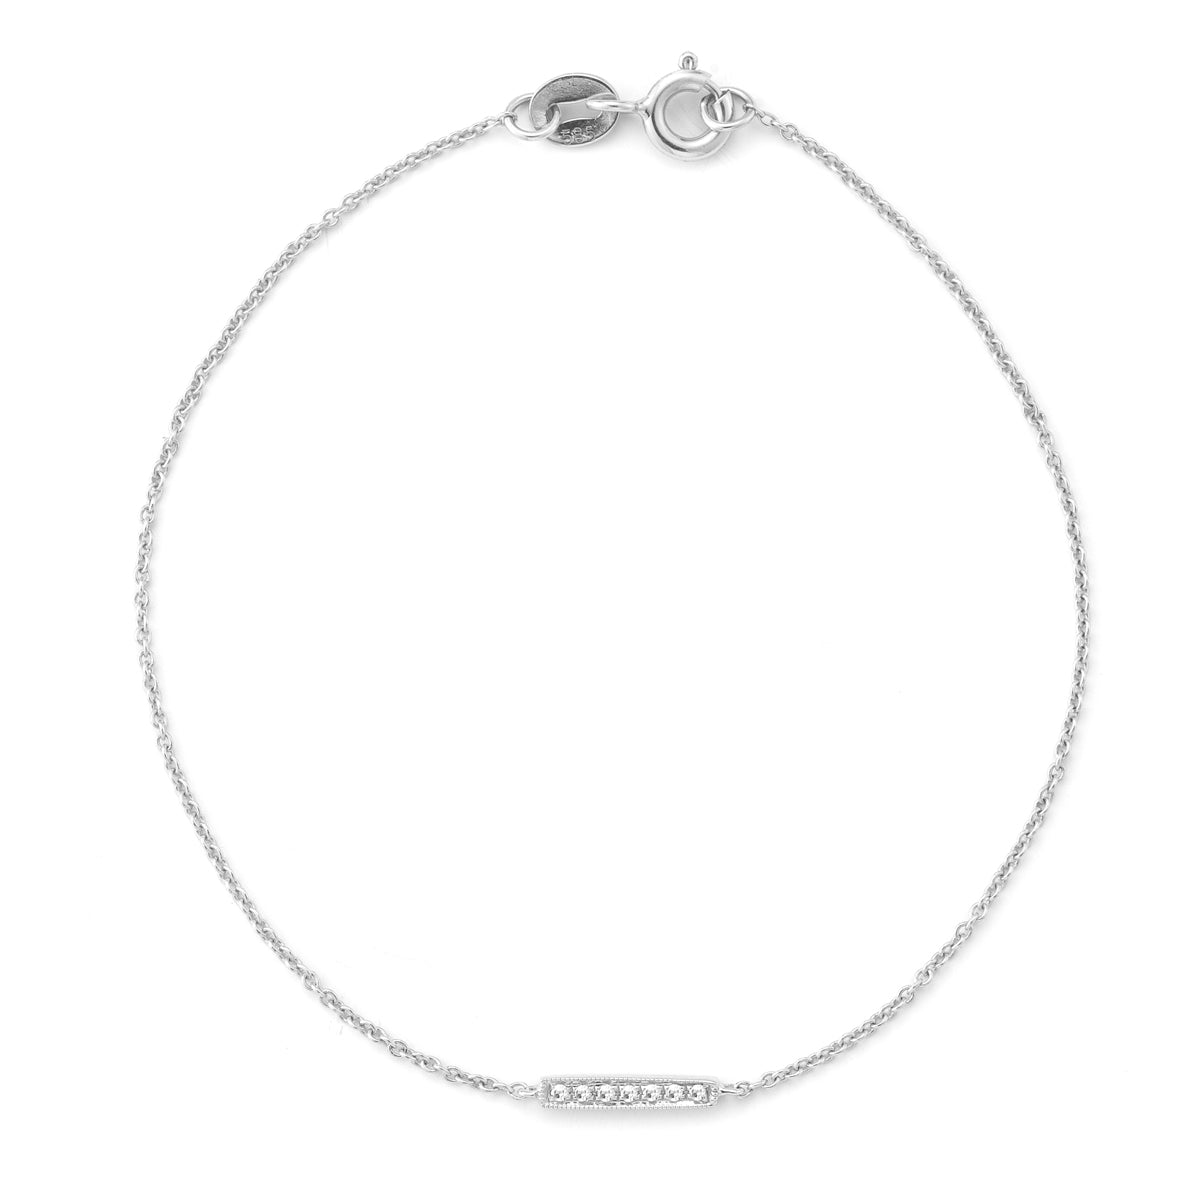 14K White Gold Sylvie Rose Bracelet